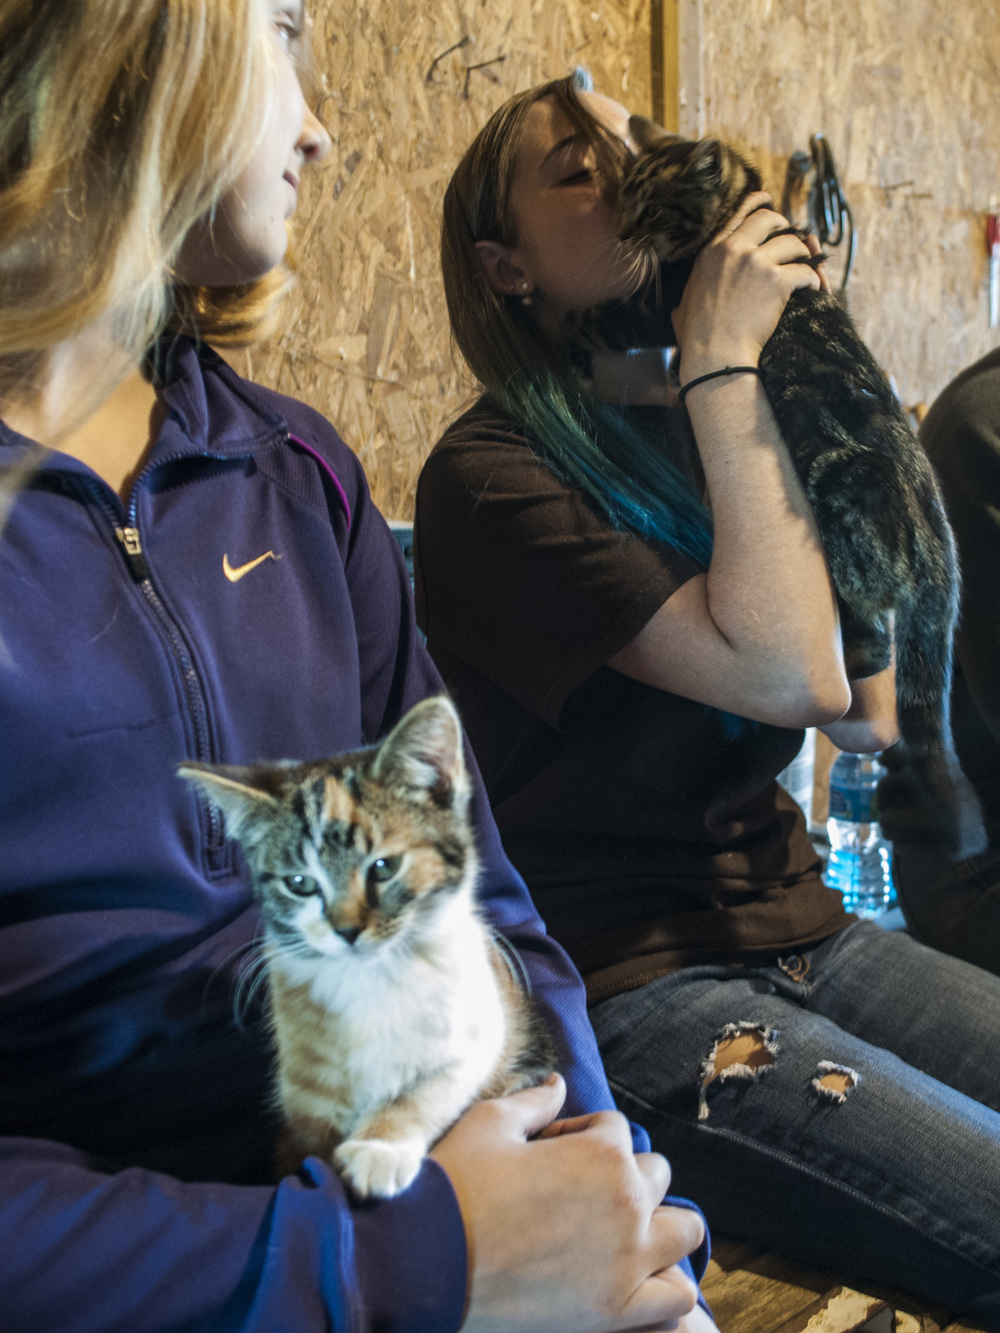 Peyton Tiedtke, left, and Kailey Dean, right, play with the two of the four kittens that live in the barn. Dean tried to calm her kitten that was swatting and playing with the girls' long hair (Sept. 23, 2014).